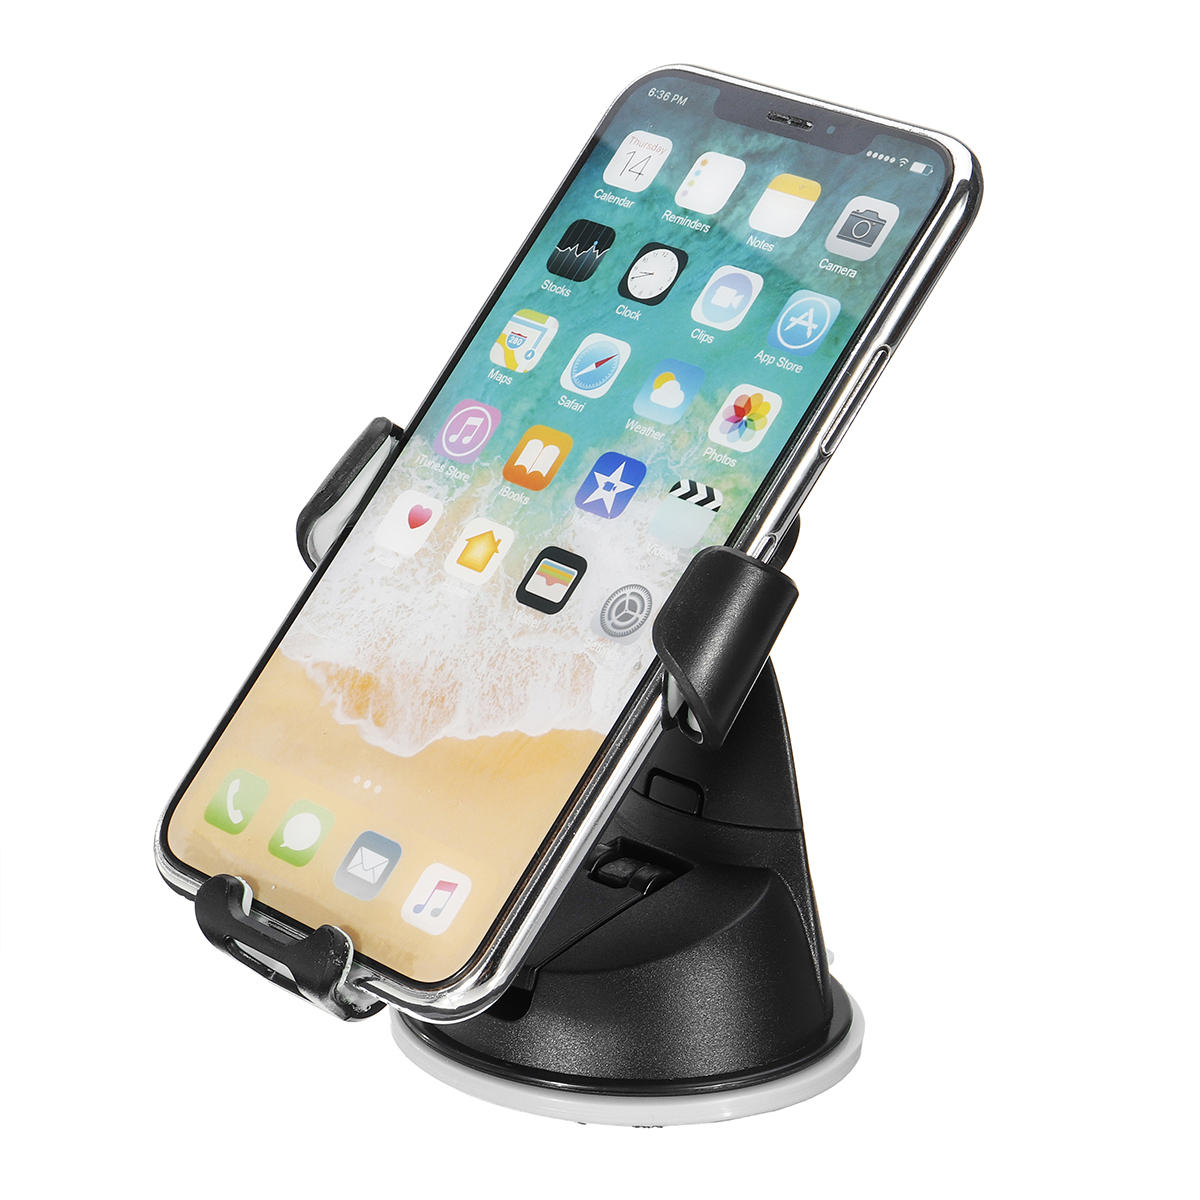 Universal Gravity Linkage Auto Lock Car Air Vent Mount Dashboard Holder for iPhone Xiaomi Mobile Phone